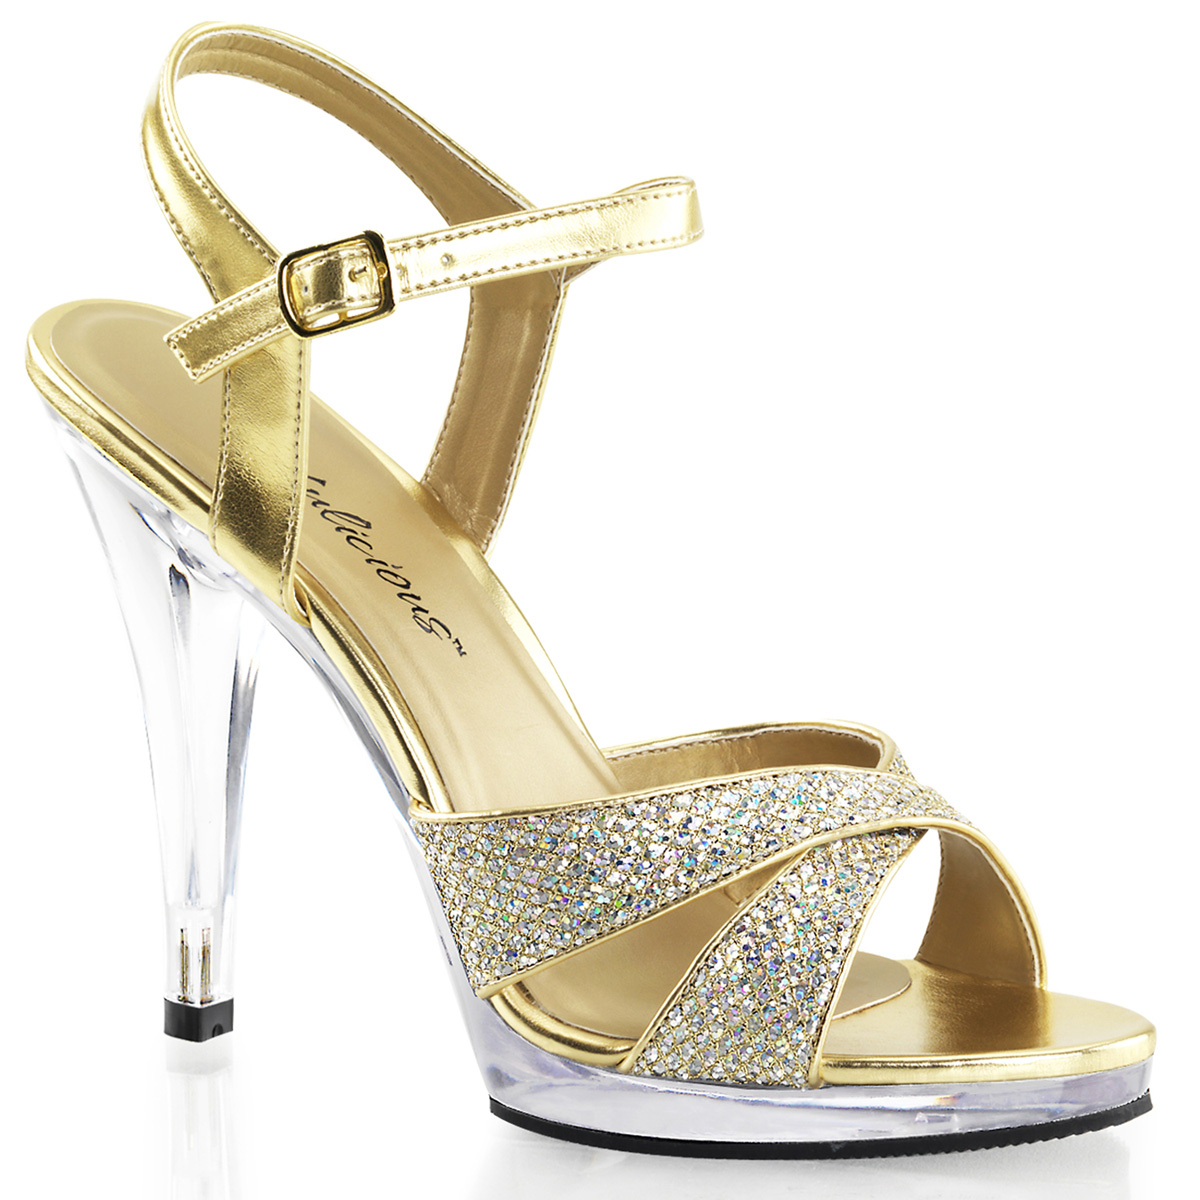 """FABULICIOUS FLA419G Women's New Fashion Hot Ankle Strap Sandal 4 1/2"""" Clear Heel at Sears.com"""